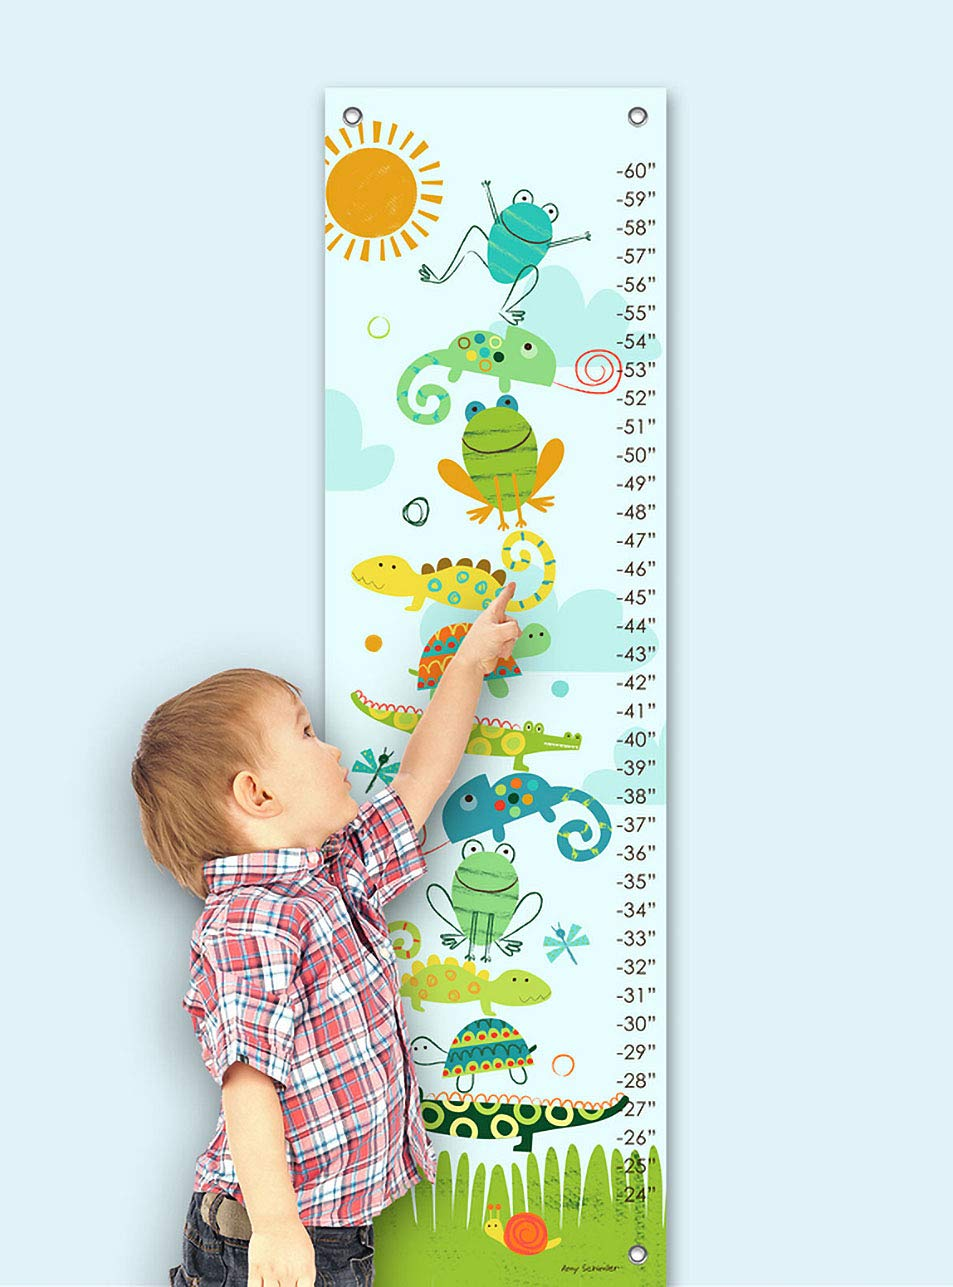 12 by 42-Inch Oopsy Daisy Crawly Critters by Amy Schimler Safford Growth Charts